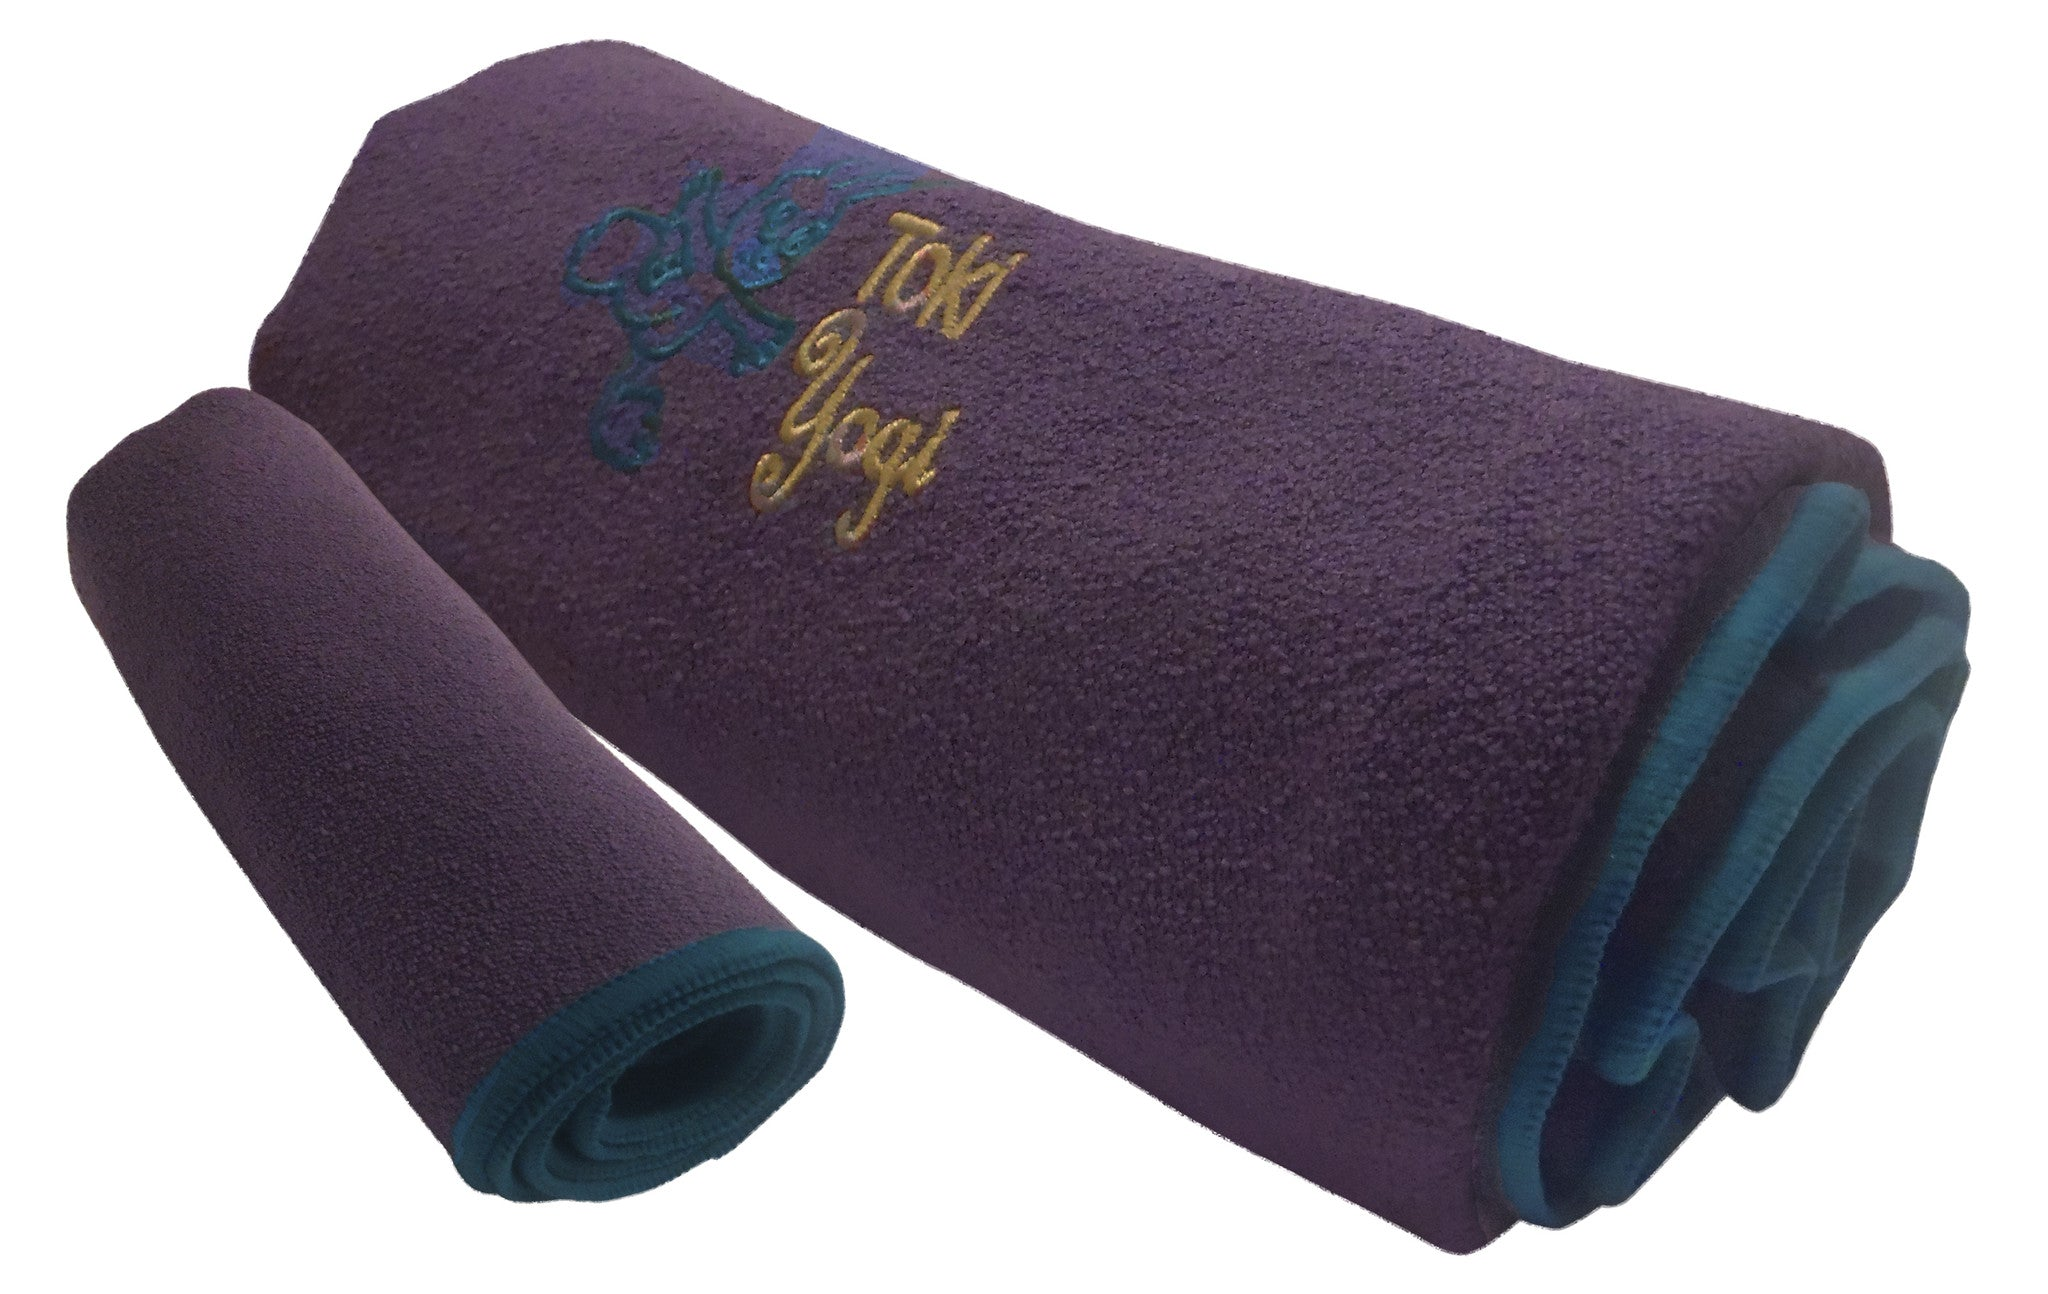 Namaste Bundle - Mat towel & Hand towel Bundle - GREAT DISCOUNT!